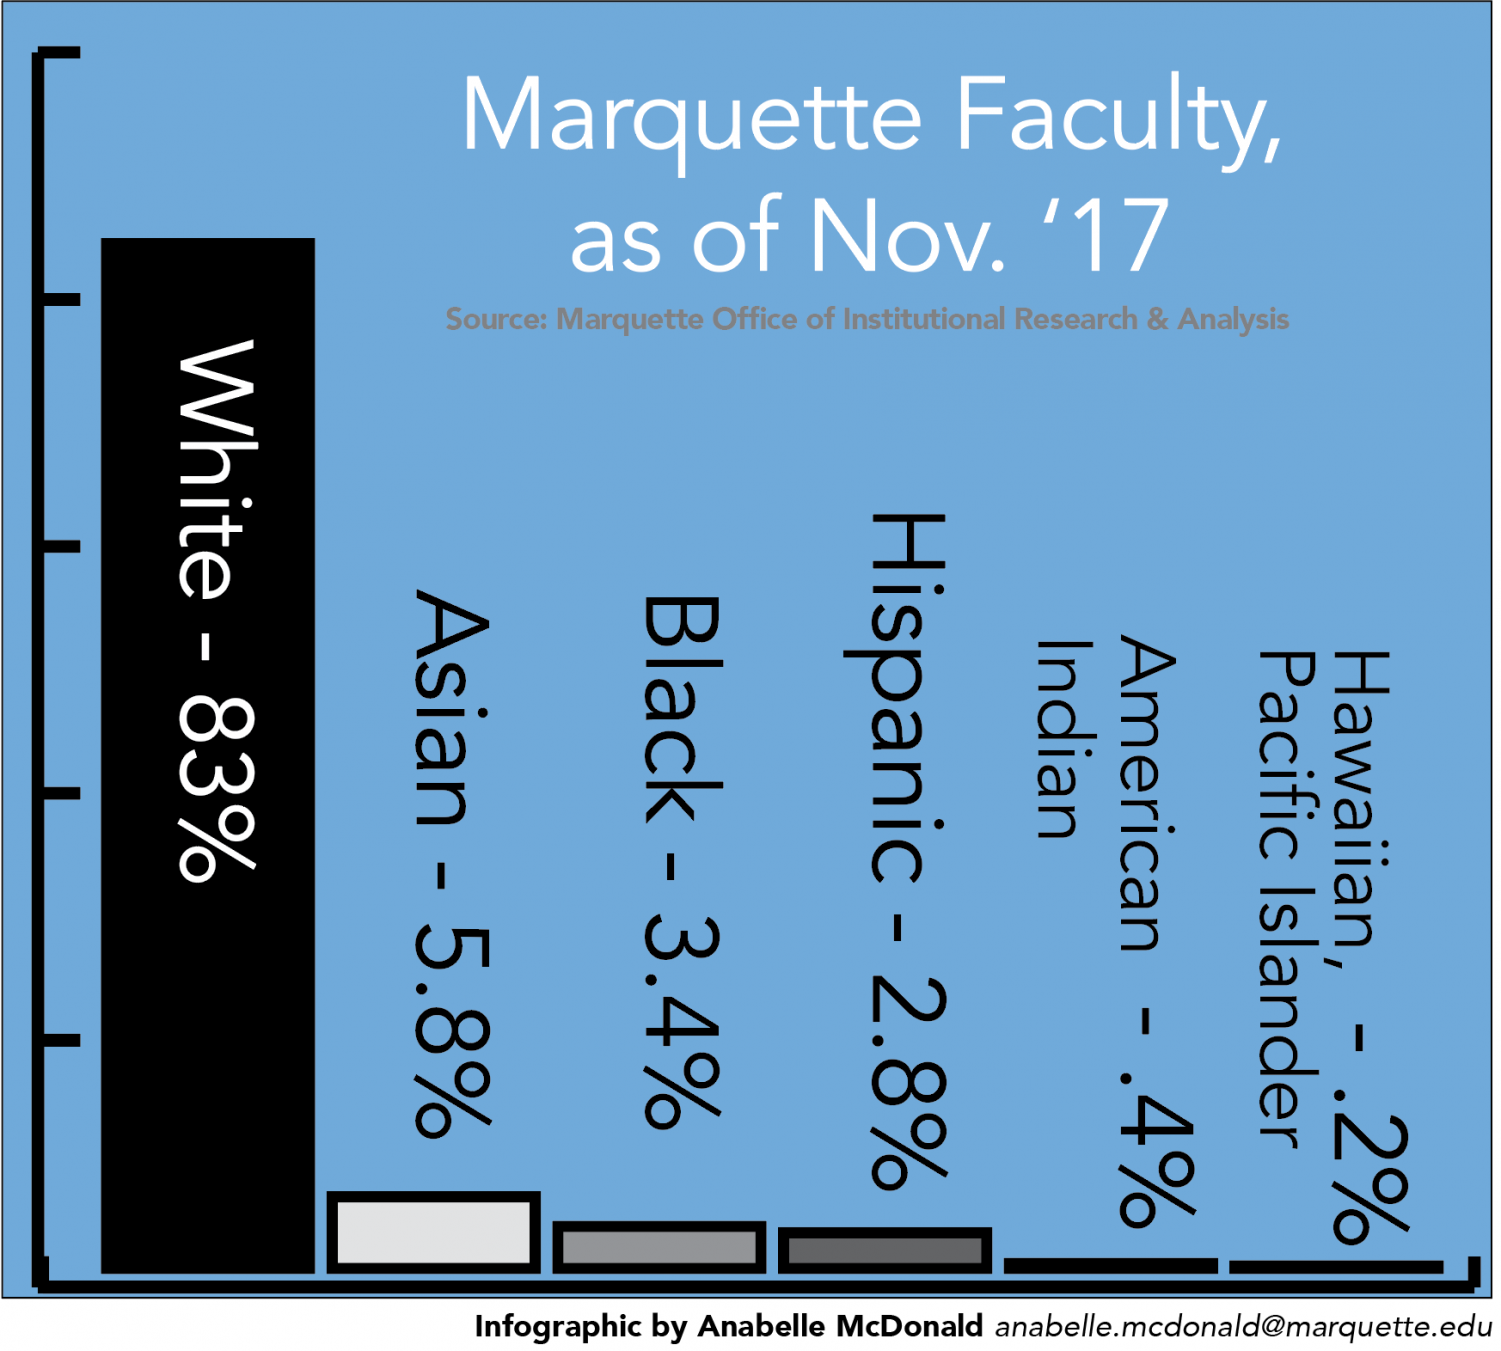 Marquette faculty are predominantly white, a nationwide trend.